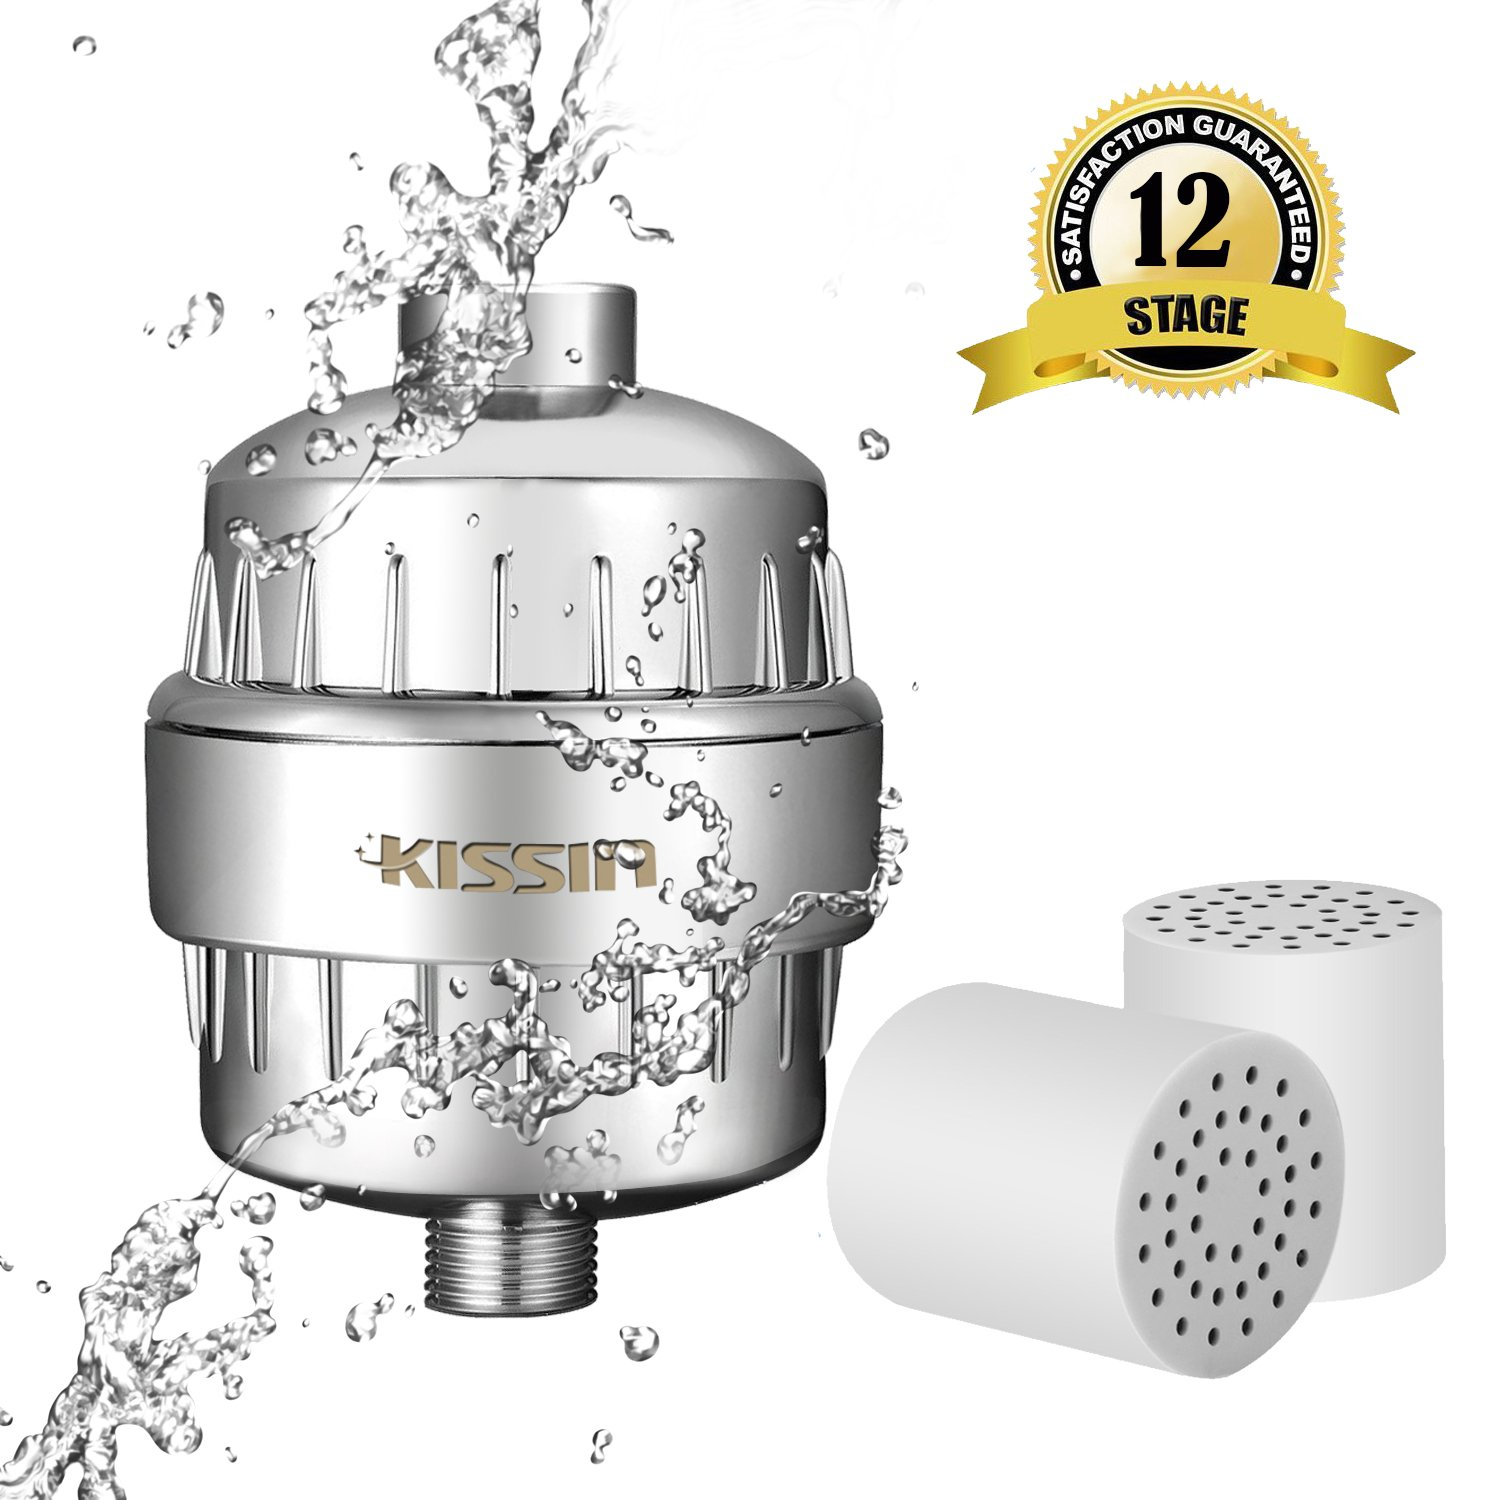 Shower Filter 12-Stage Shower Water Filter Removes Heavy Metals Replaceable Filter Cartridge Hand Held Shower Filter